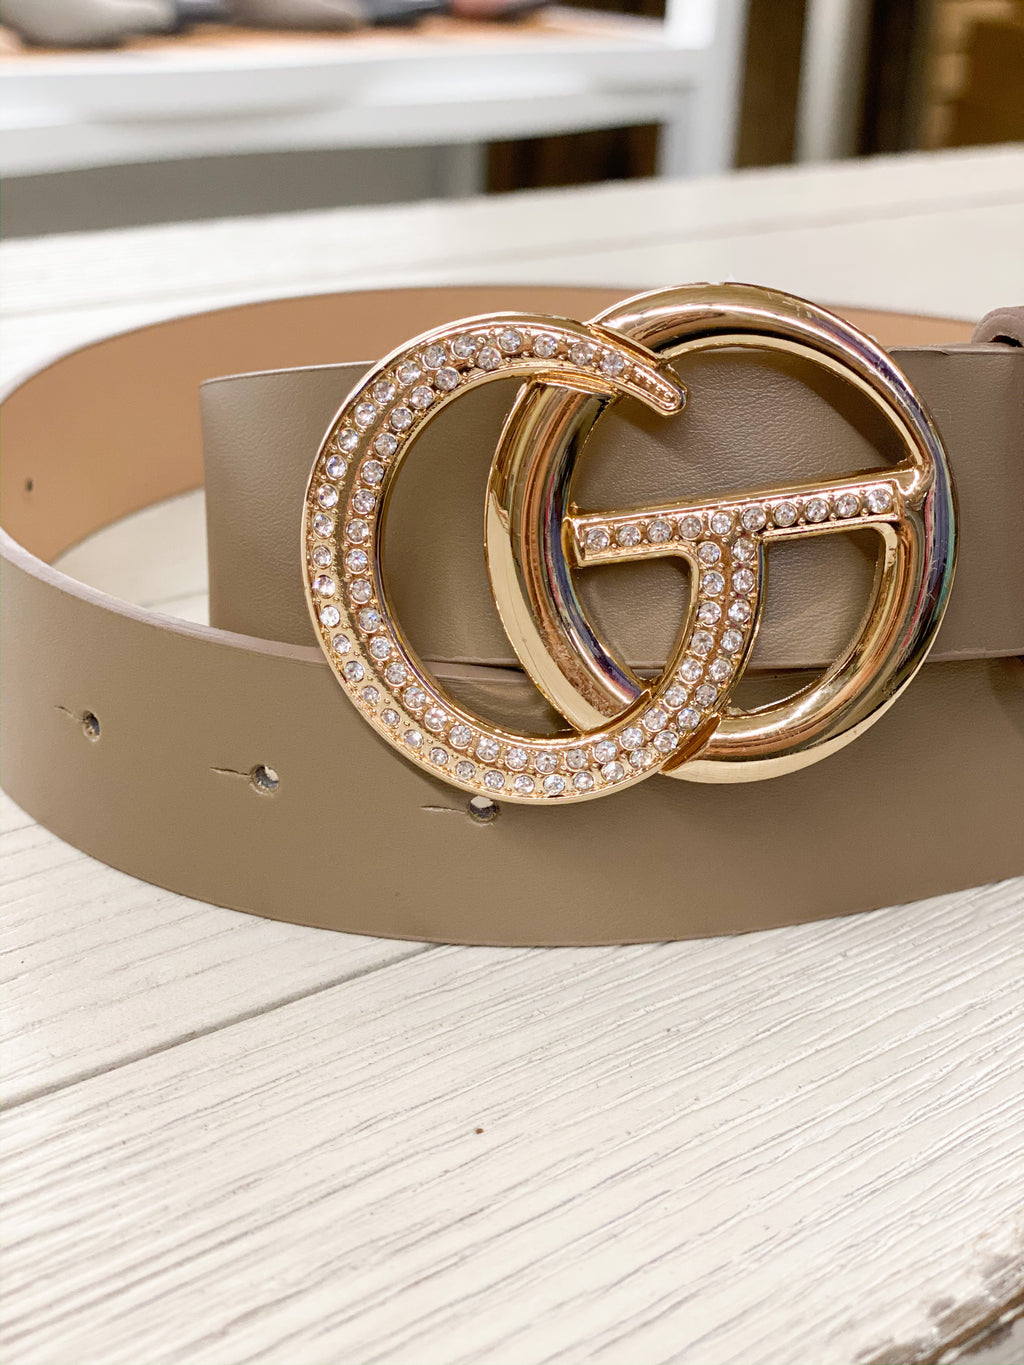 The Latest Trend Rhinestone Belt Khaki